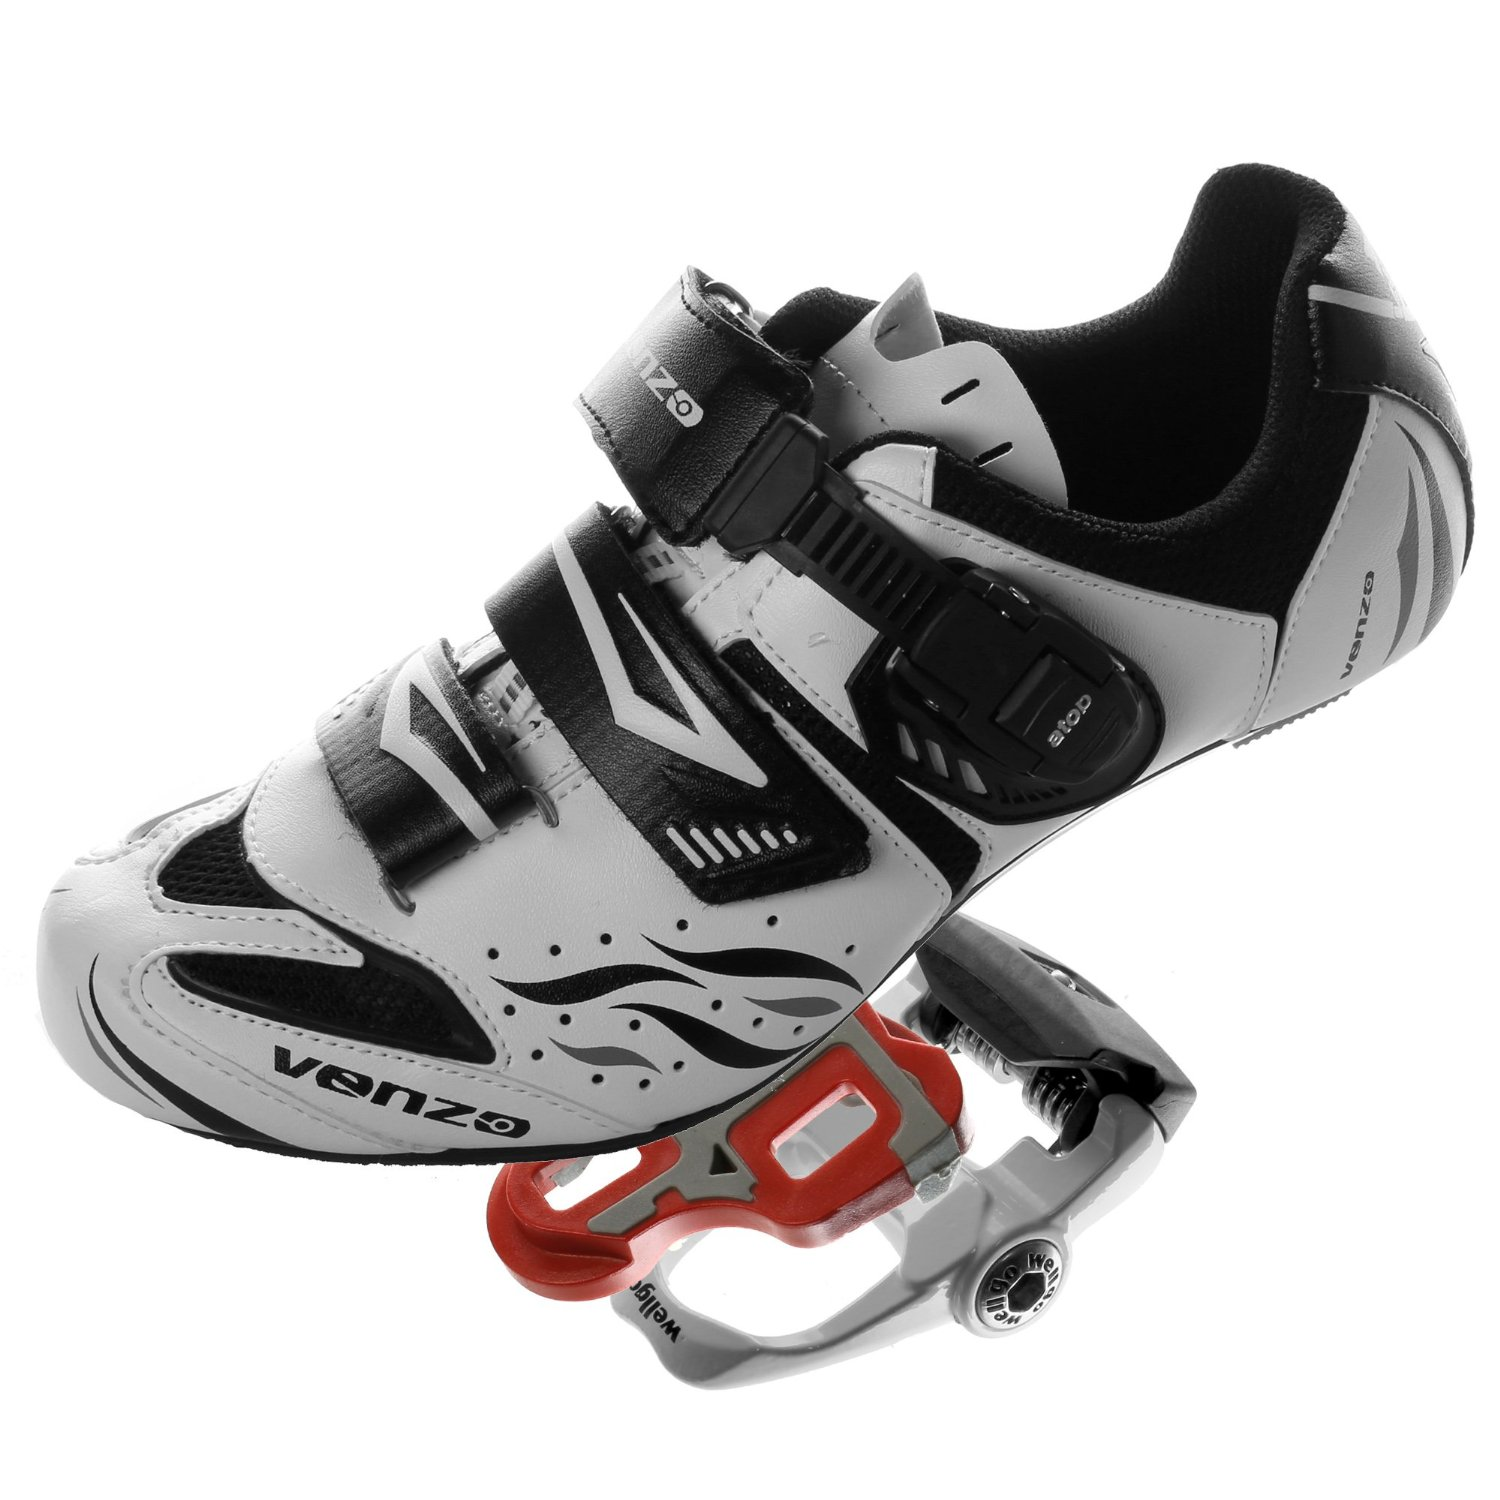 Where To Buy Shimano Shoes